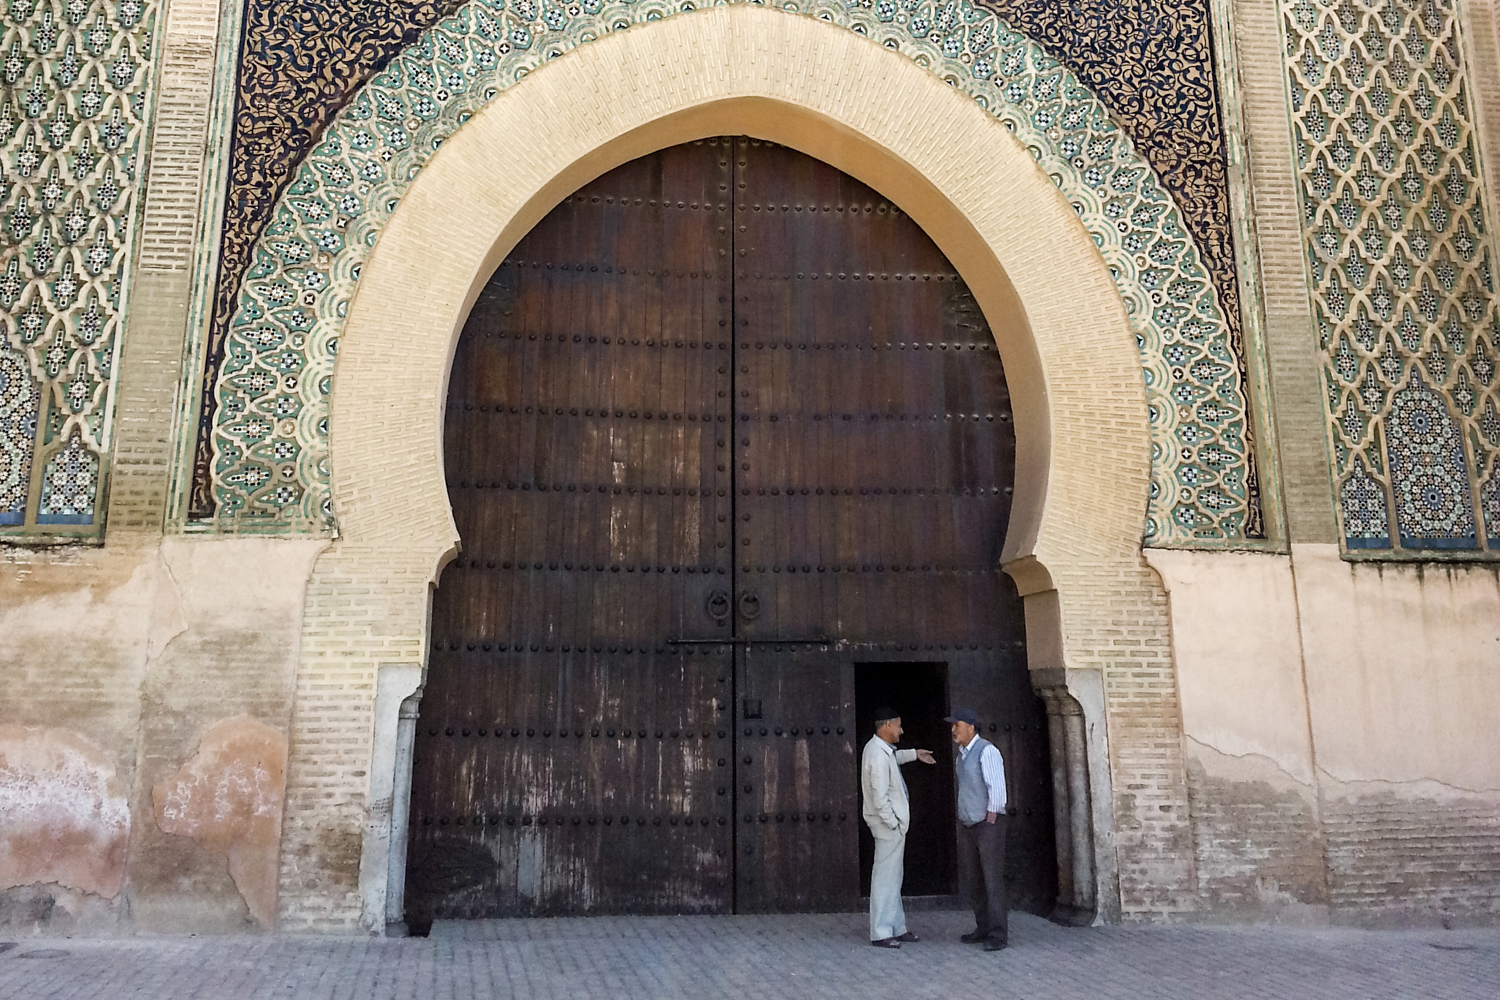 Morocco guide: 10 things to know before you go | CNN Travel